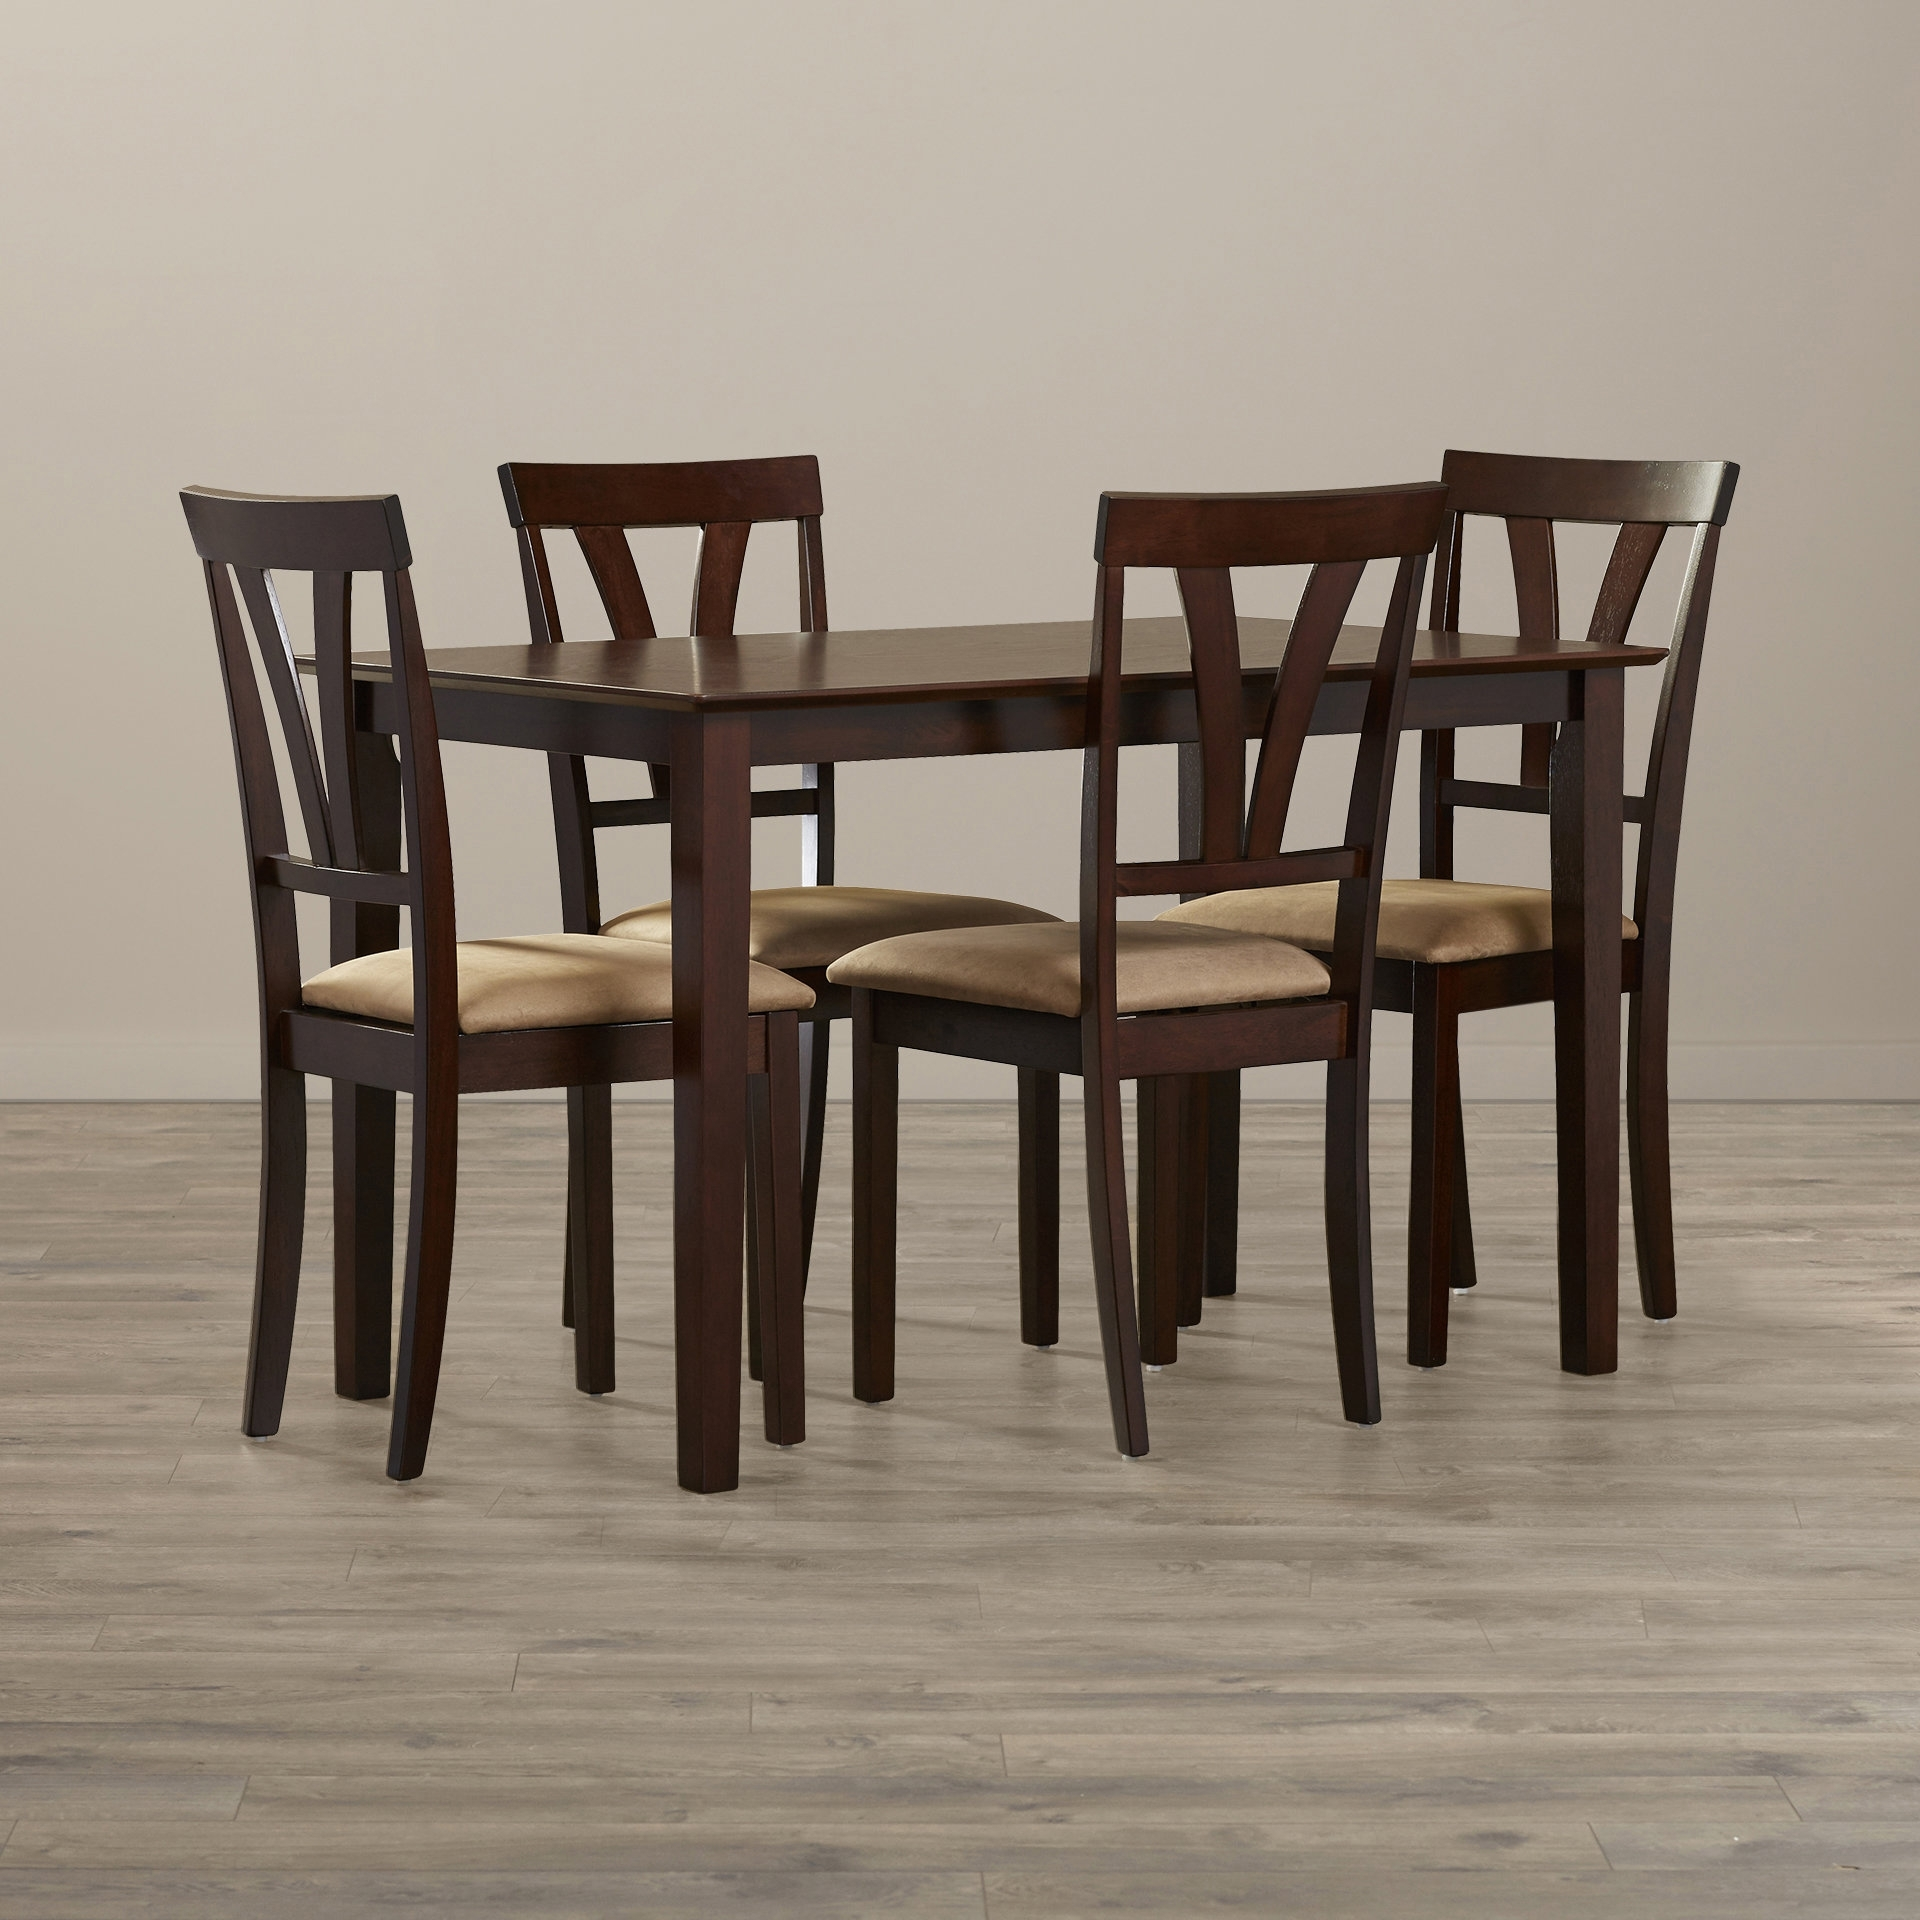 Wayfair With Regard To Market 6 Piece Dining Sets With Side Chairs (View 25 of 25)